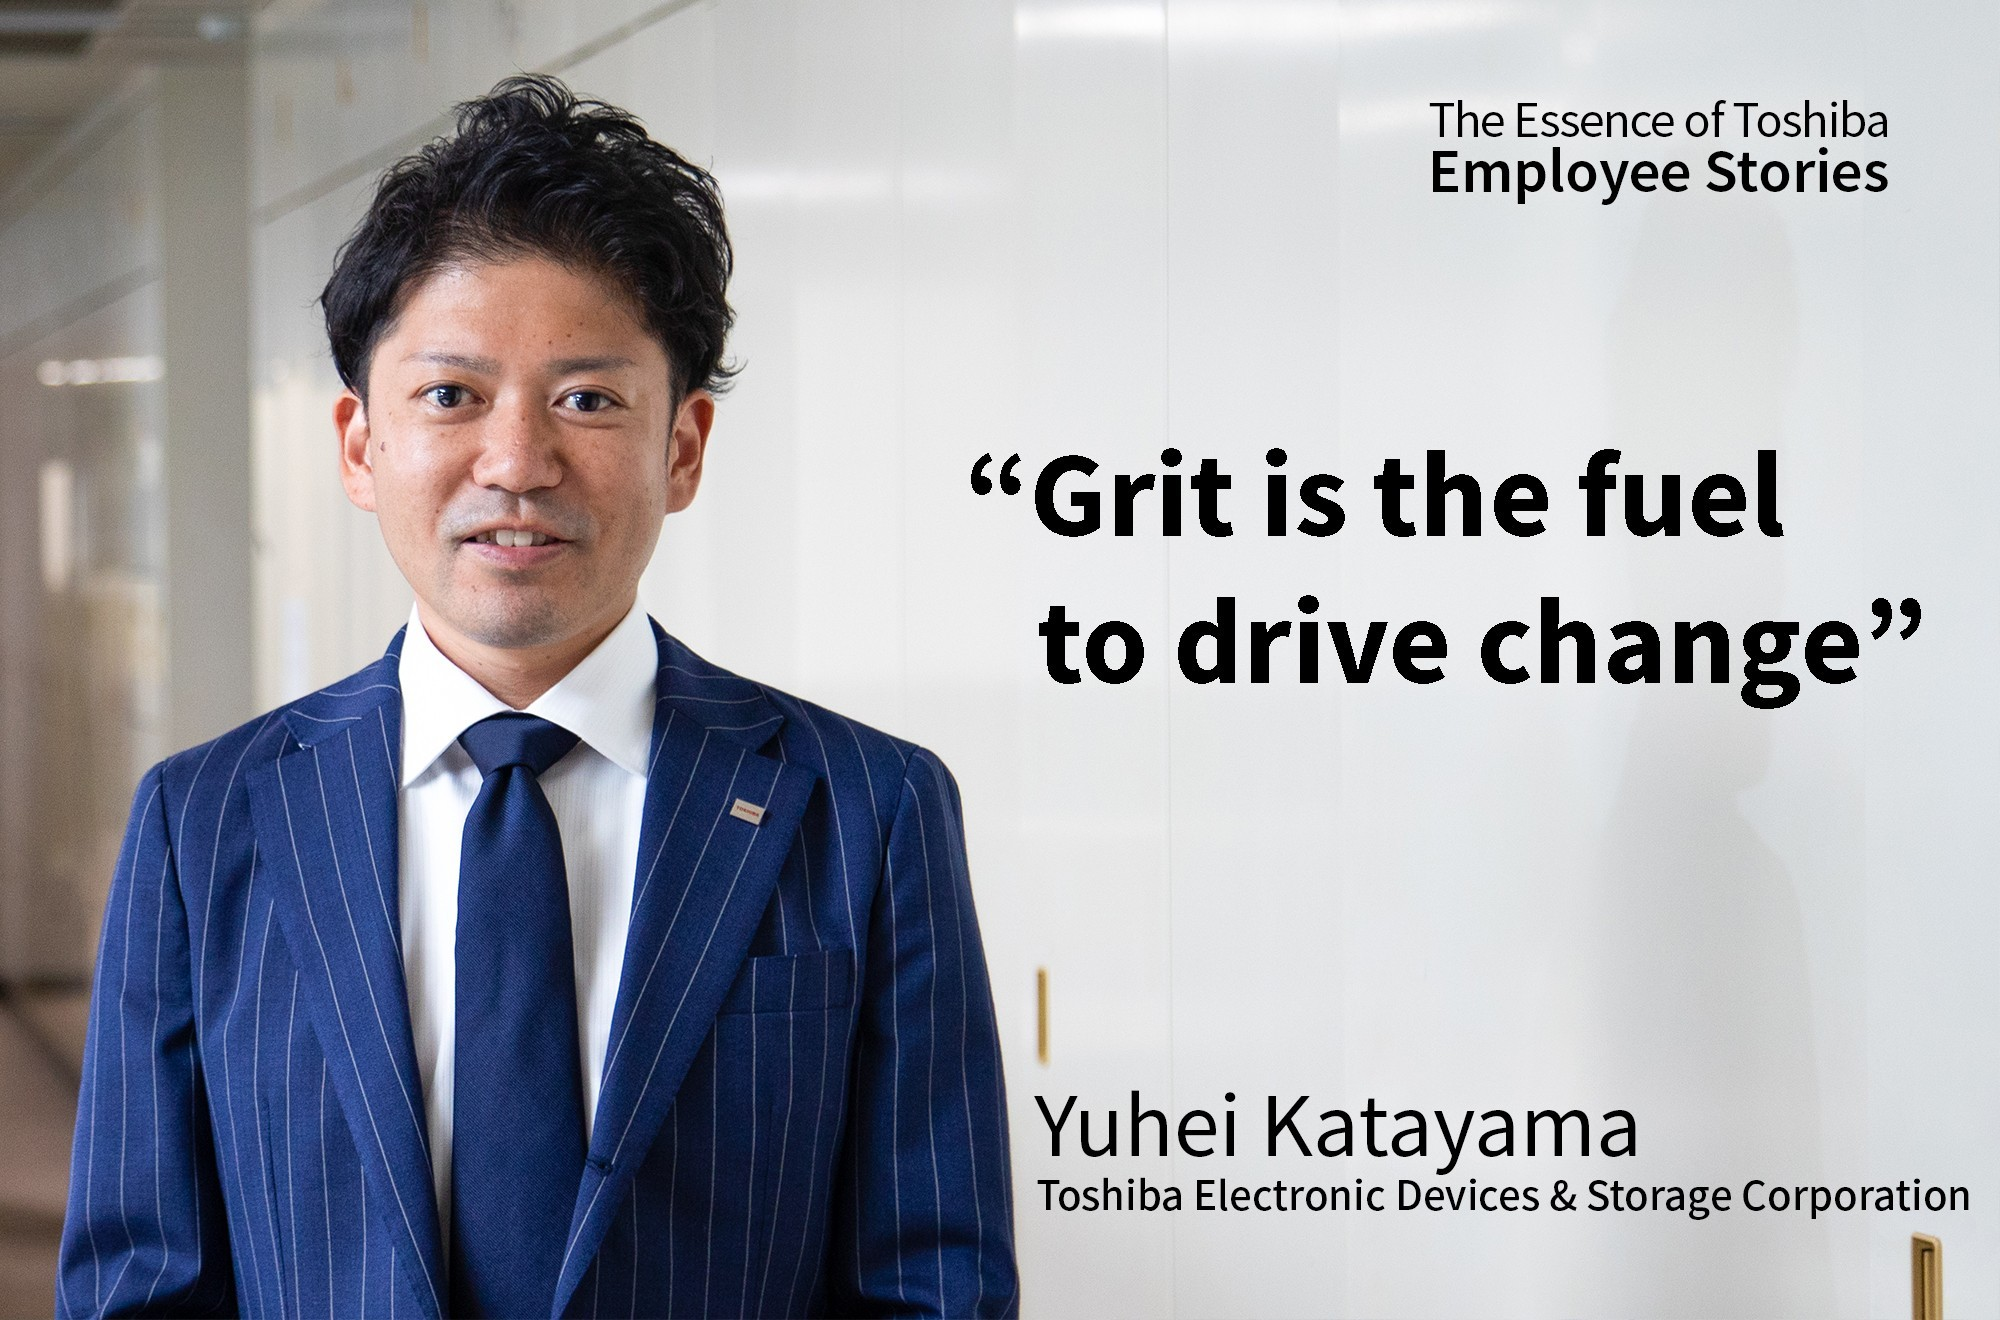 We Are Toshiba: Grit is the Fuel to Drive Change